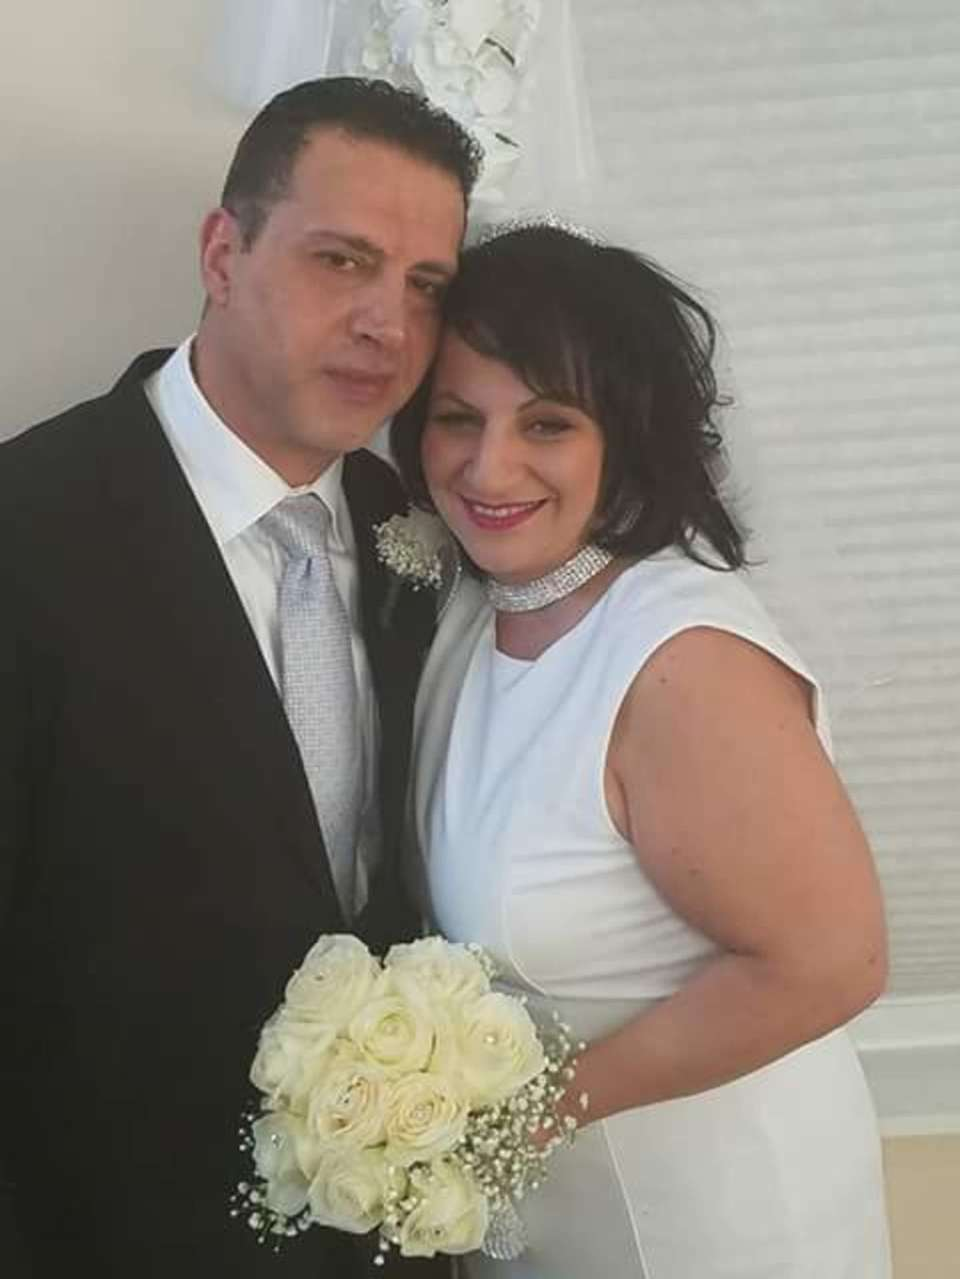 Ahmad AbuSaad & Diana Hanna, Married on March